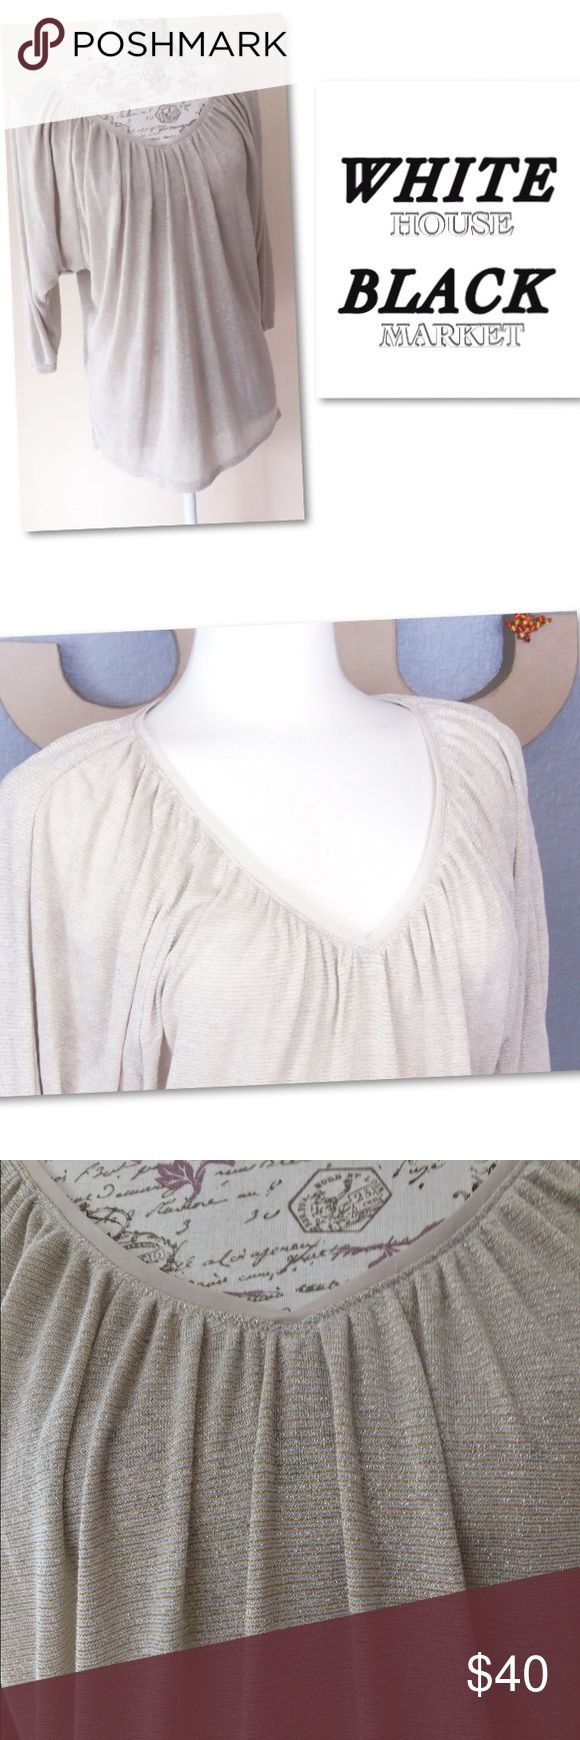 WHBM Gold Batwing Sleeve Drape Shimmery Blouse M Cream beige color. Metallic gold and silver  shimmery coloring add an elegant lion to the tops style. No flaws. Stretchy and loose  drape style fit. M White House Black Market Tops Blouses